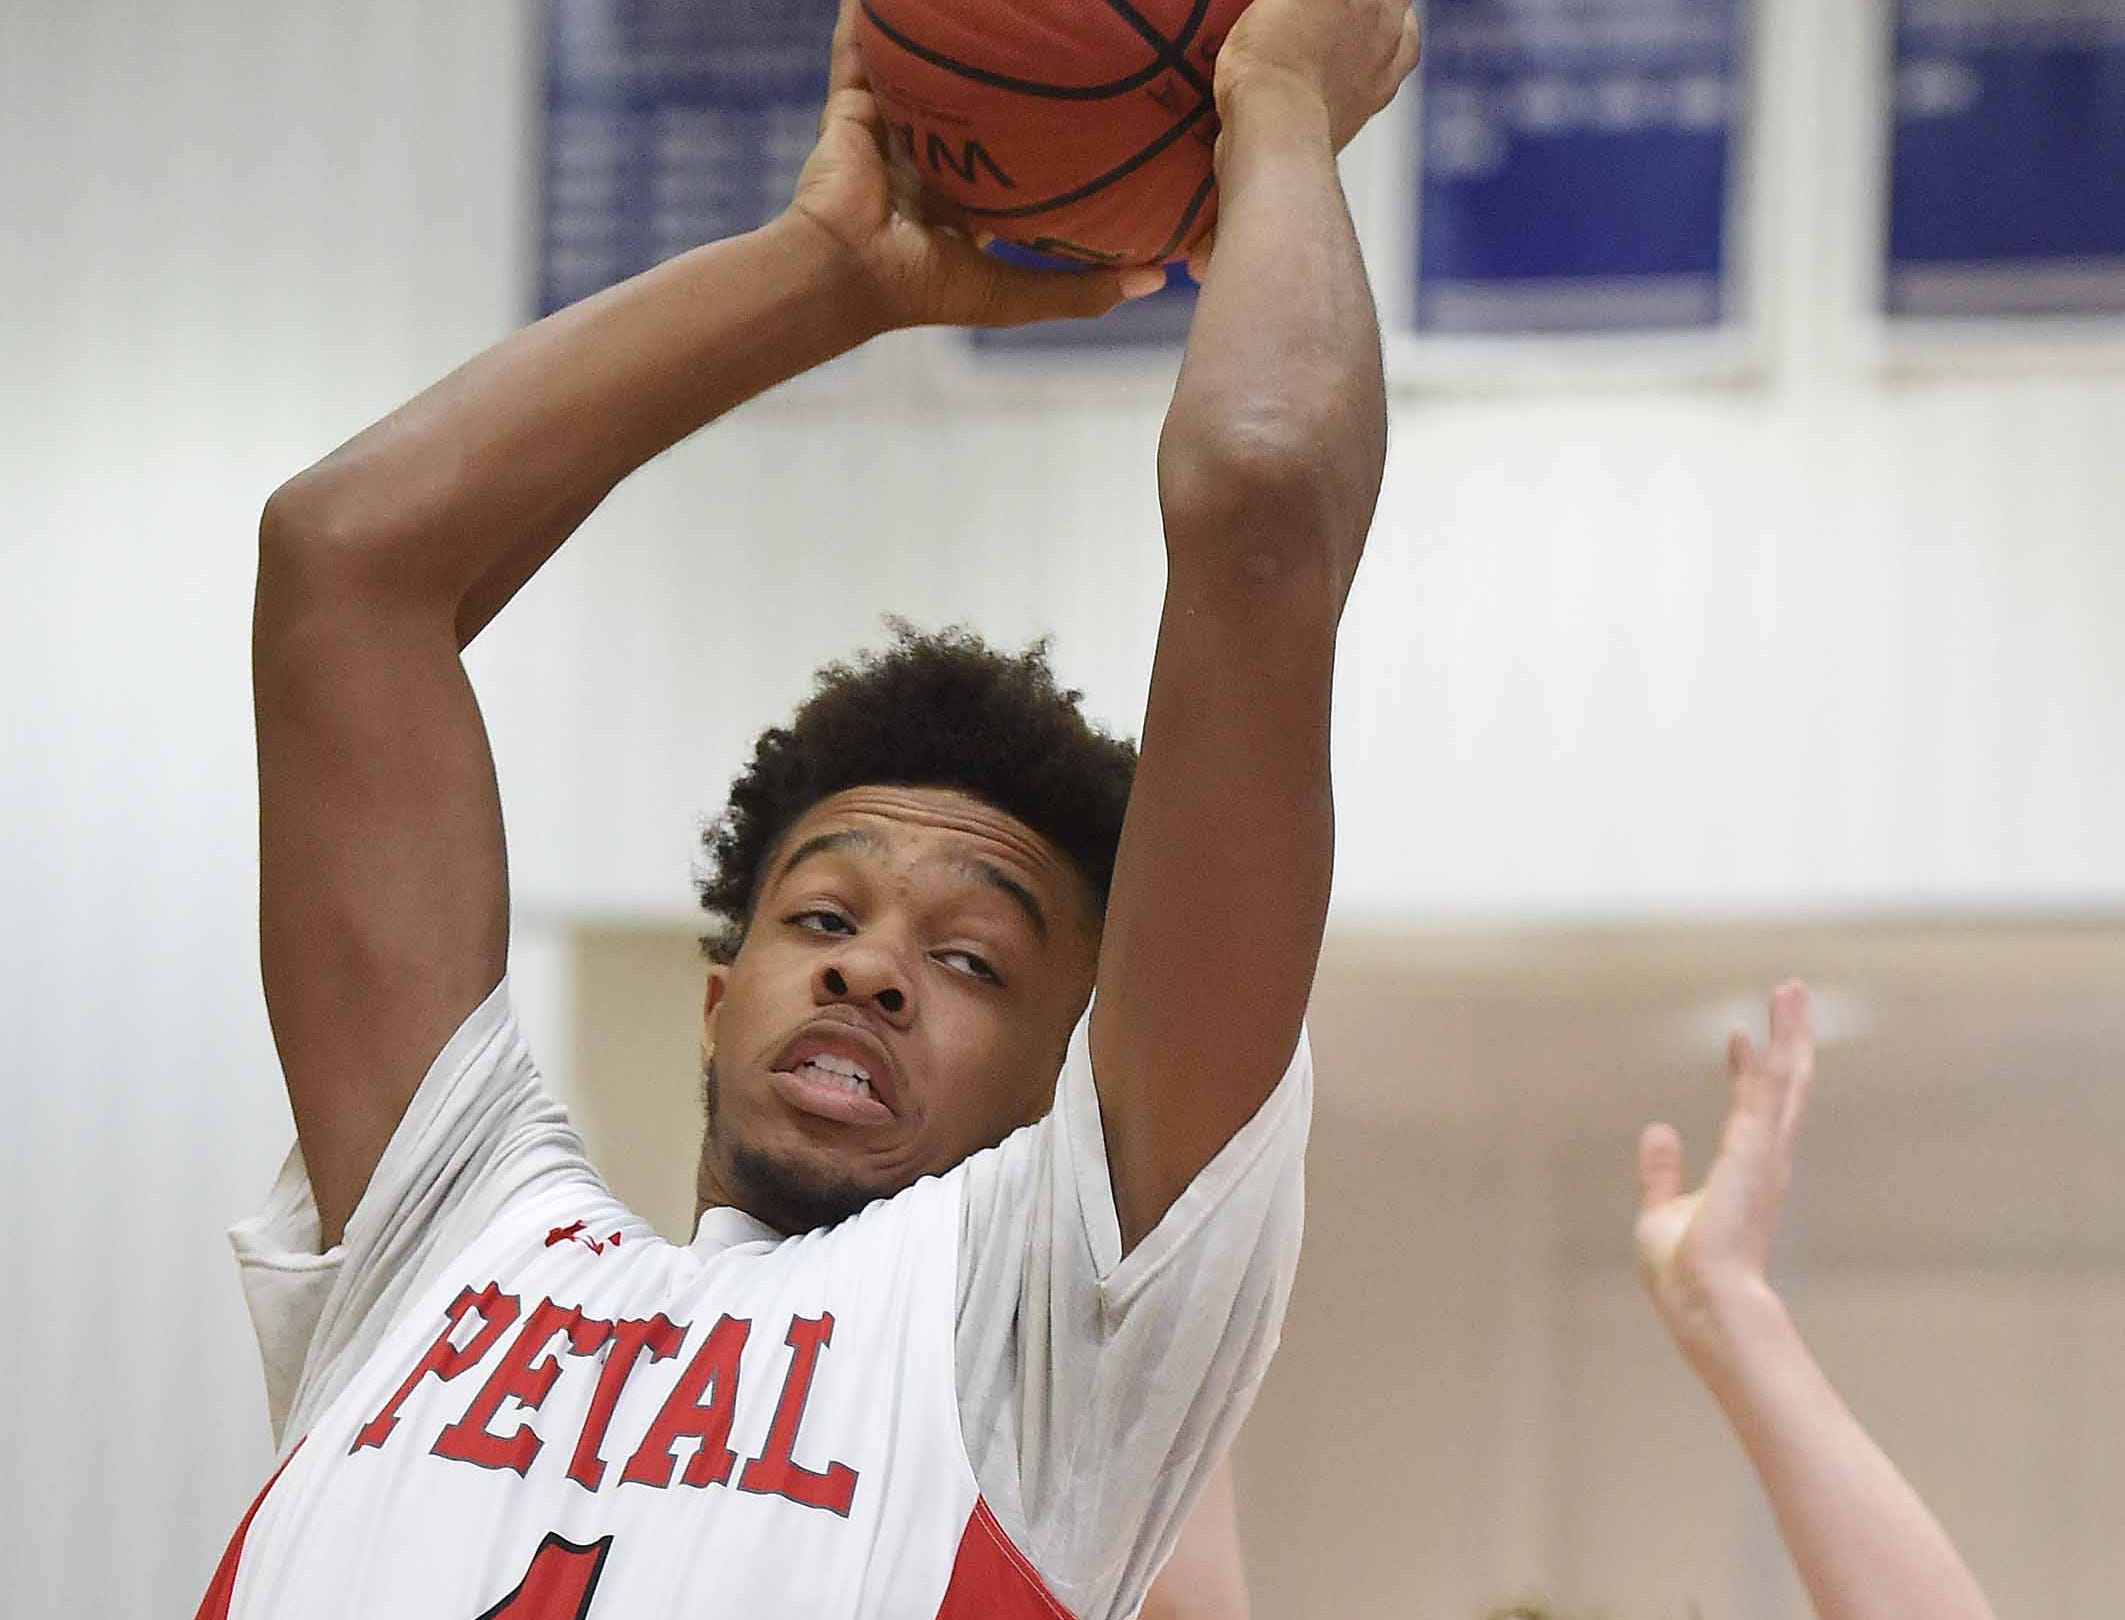 Petal's Treylan Smith (4) rebounds against Center Hill on Monday, January 21, 2019, at the Rumble in the South high school basketball tournament at St. Andrew's Episcopal School in Ridgeland, Miss.